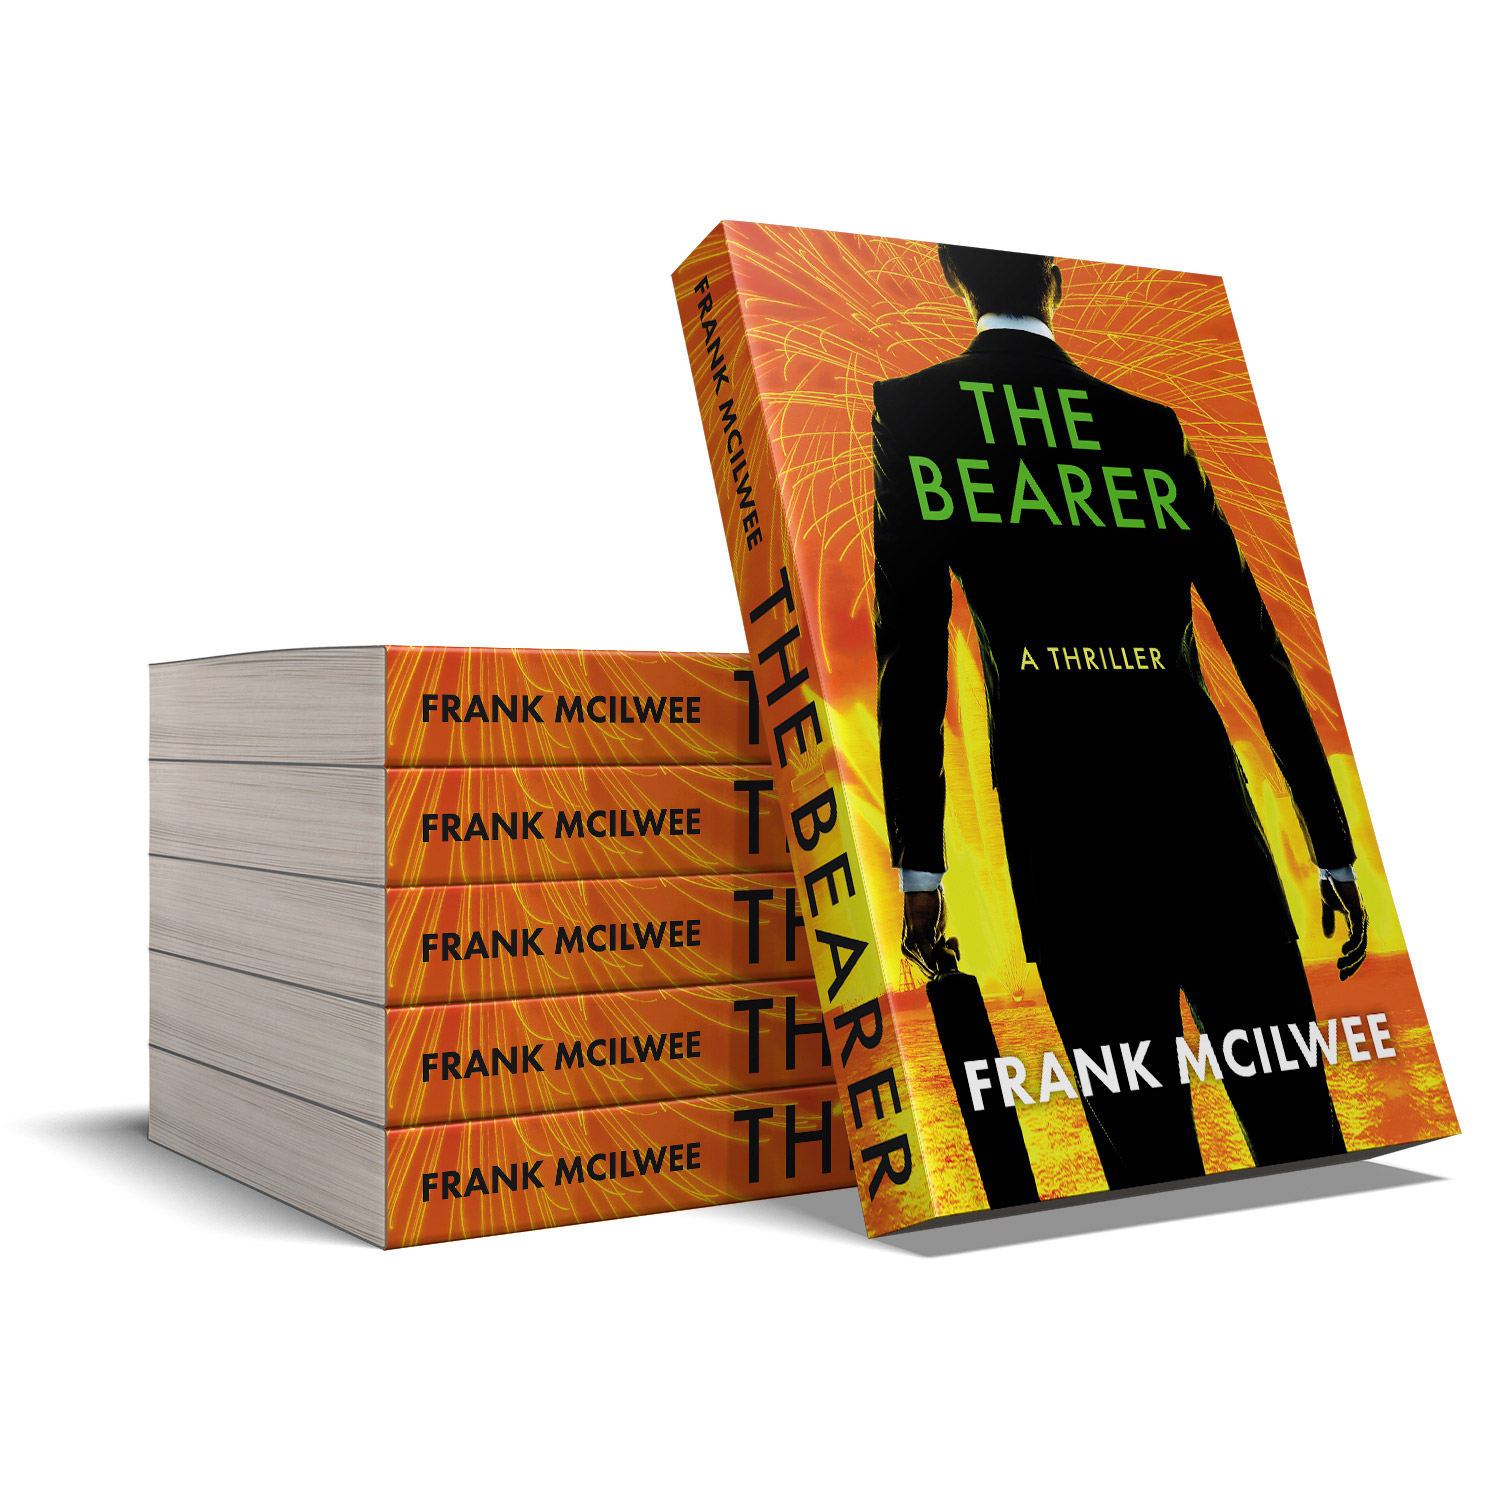 'The Bearer' is a globetrotting thriller by Frank McIlwee. The book cover design is by Mark Thomas. To learn more about what Mark could do for your book, please visit coverness.com.